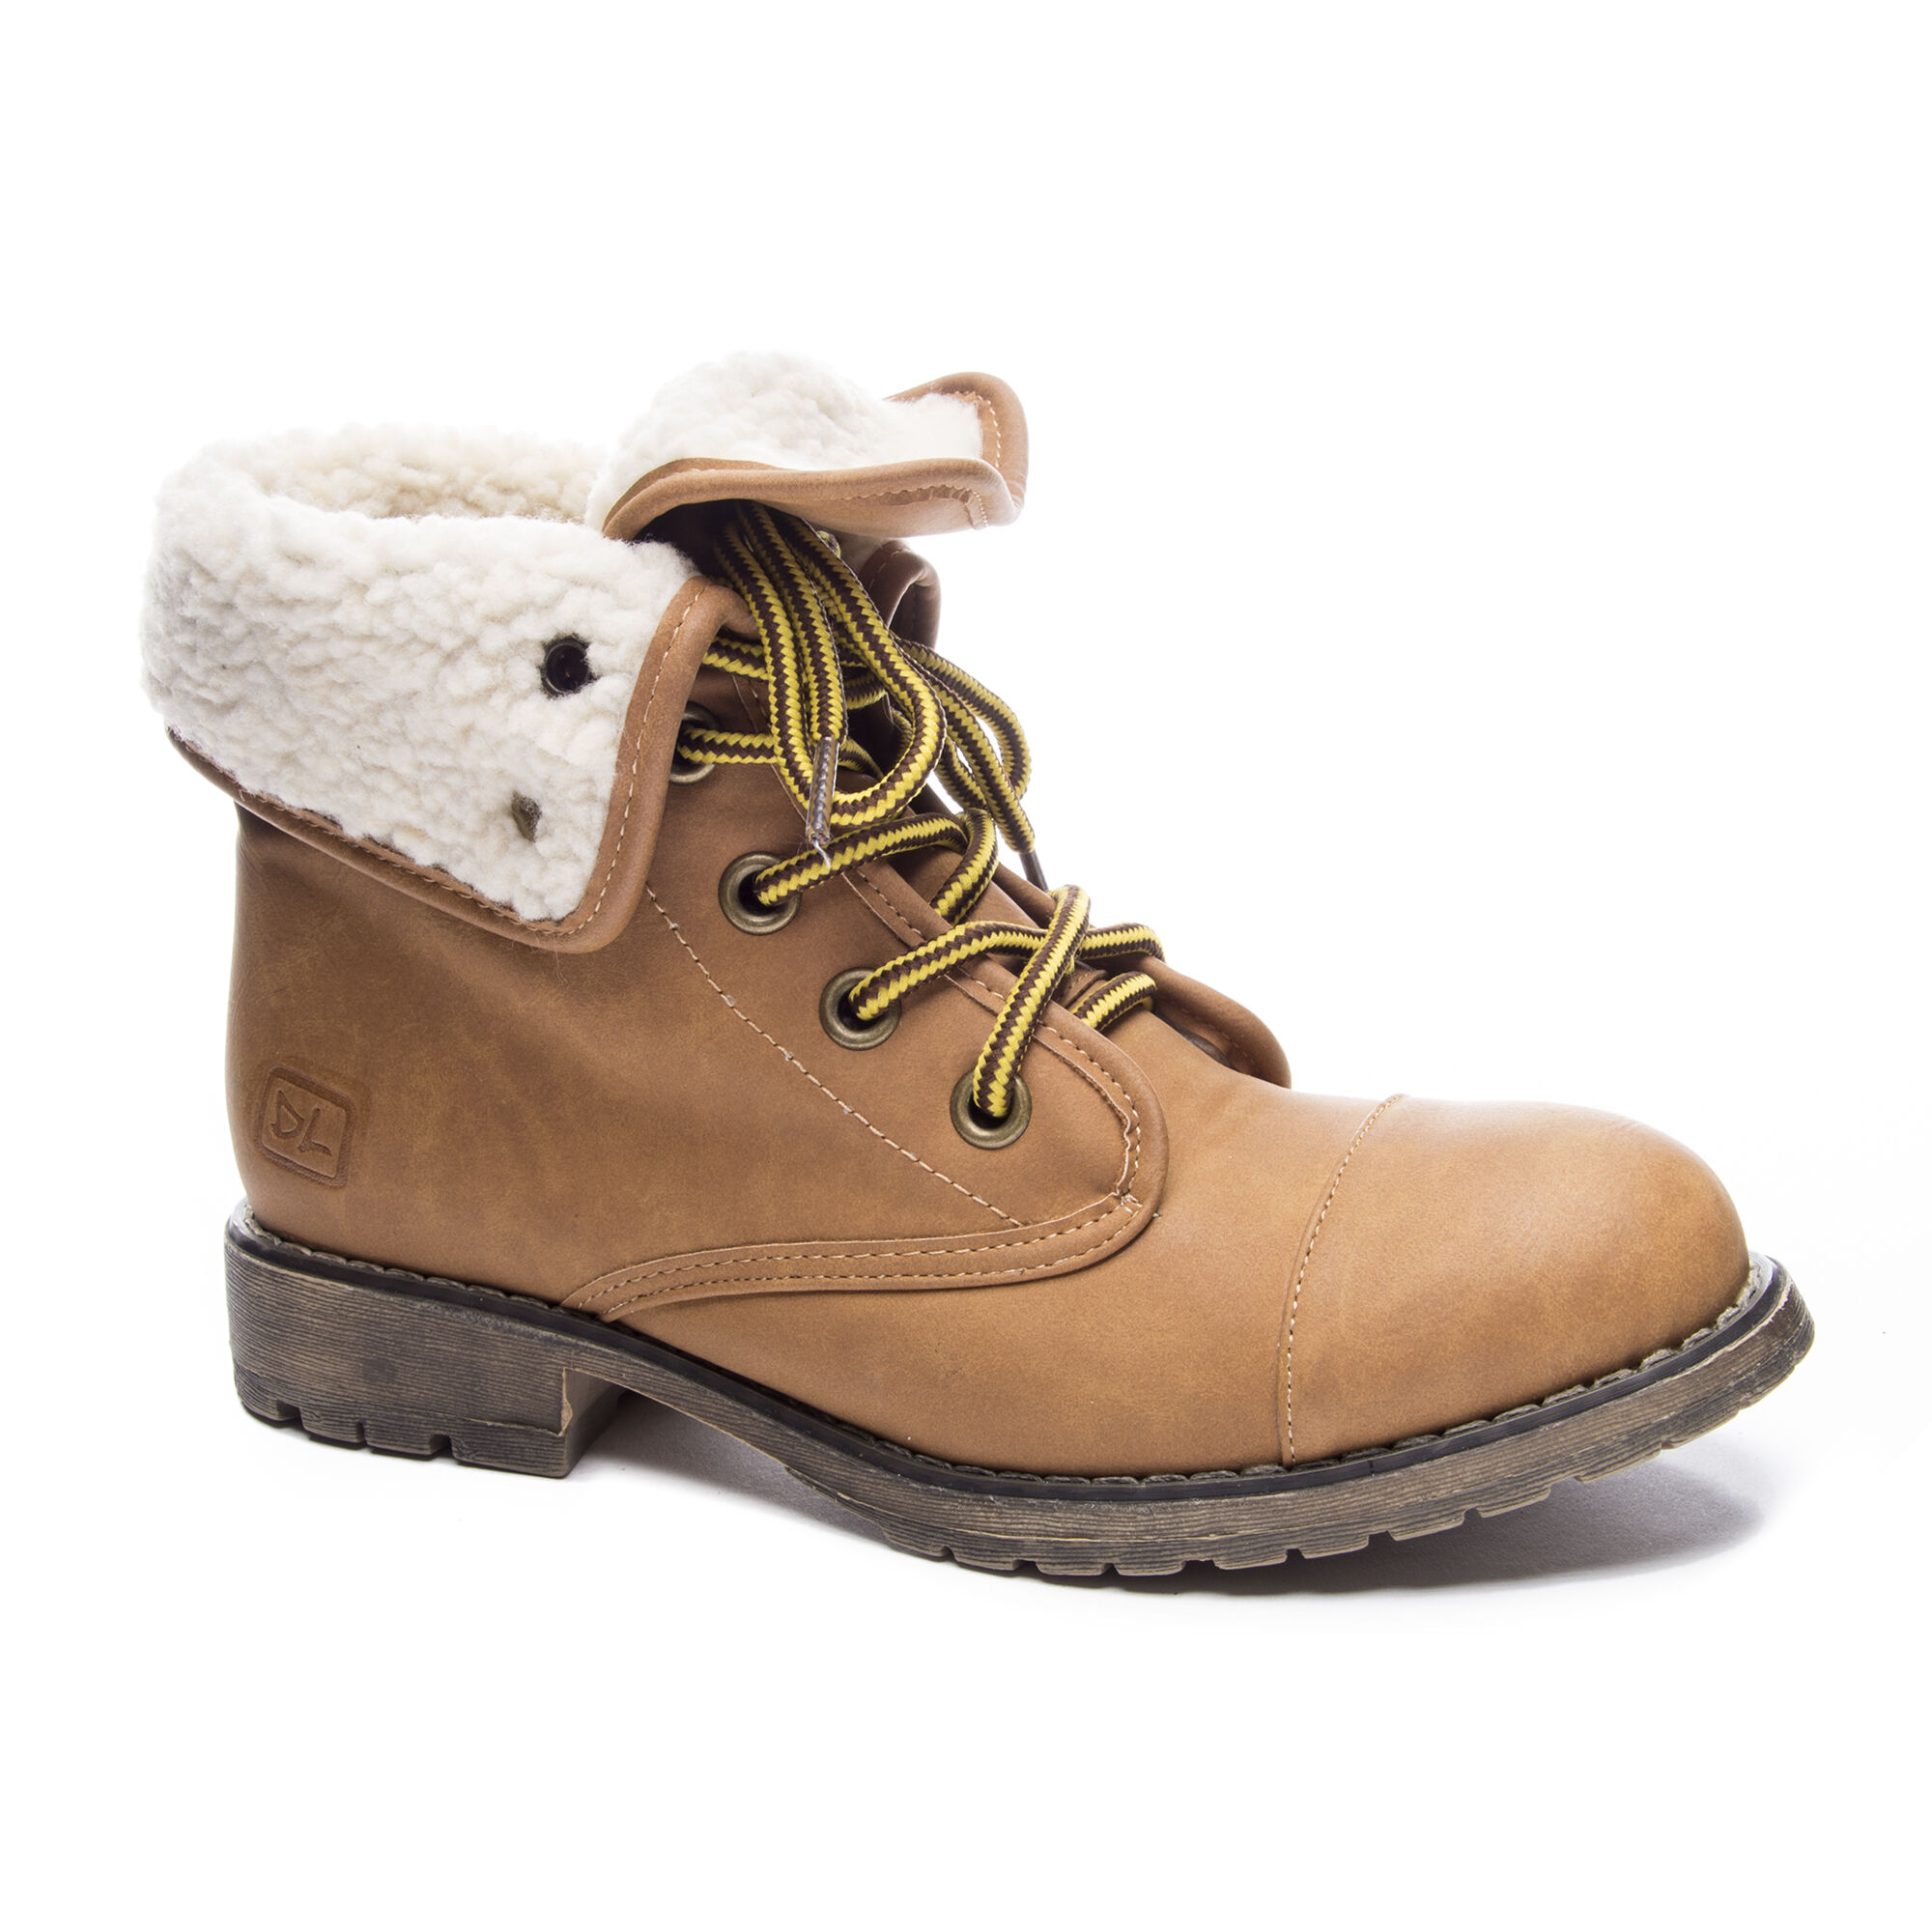 Dirty Laundry Raeven Faux Shearling Lined Boot kWvYwLpJO